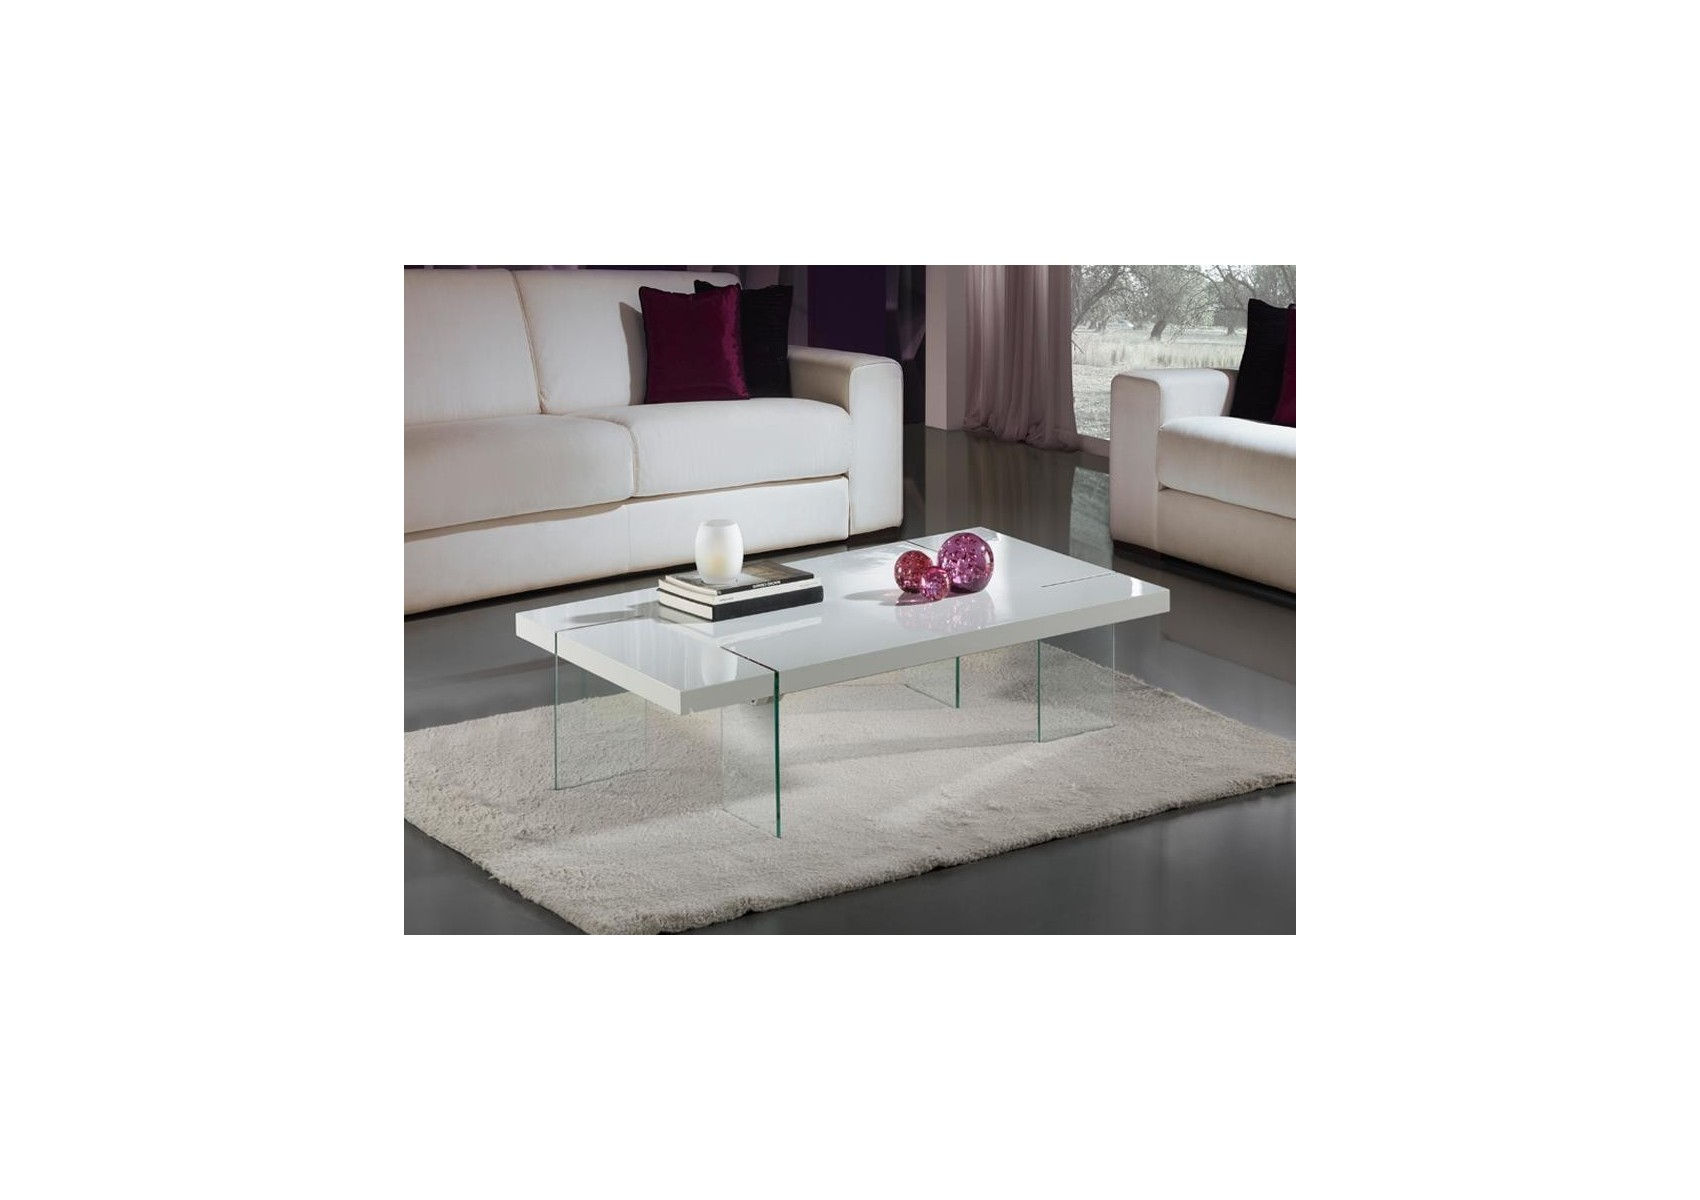 Table basse design laqu blanc et verre tremp brisa deco schuller boit - Table basse verre blanc ...